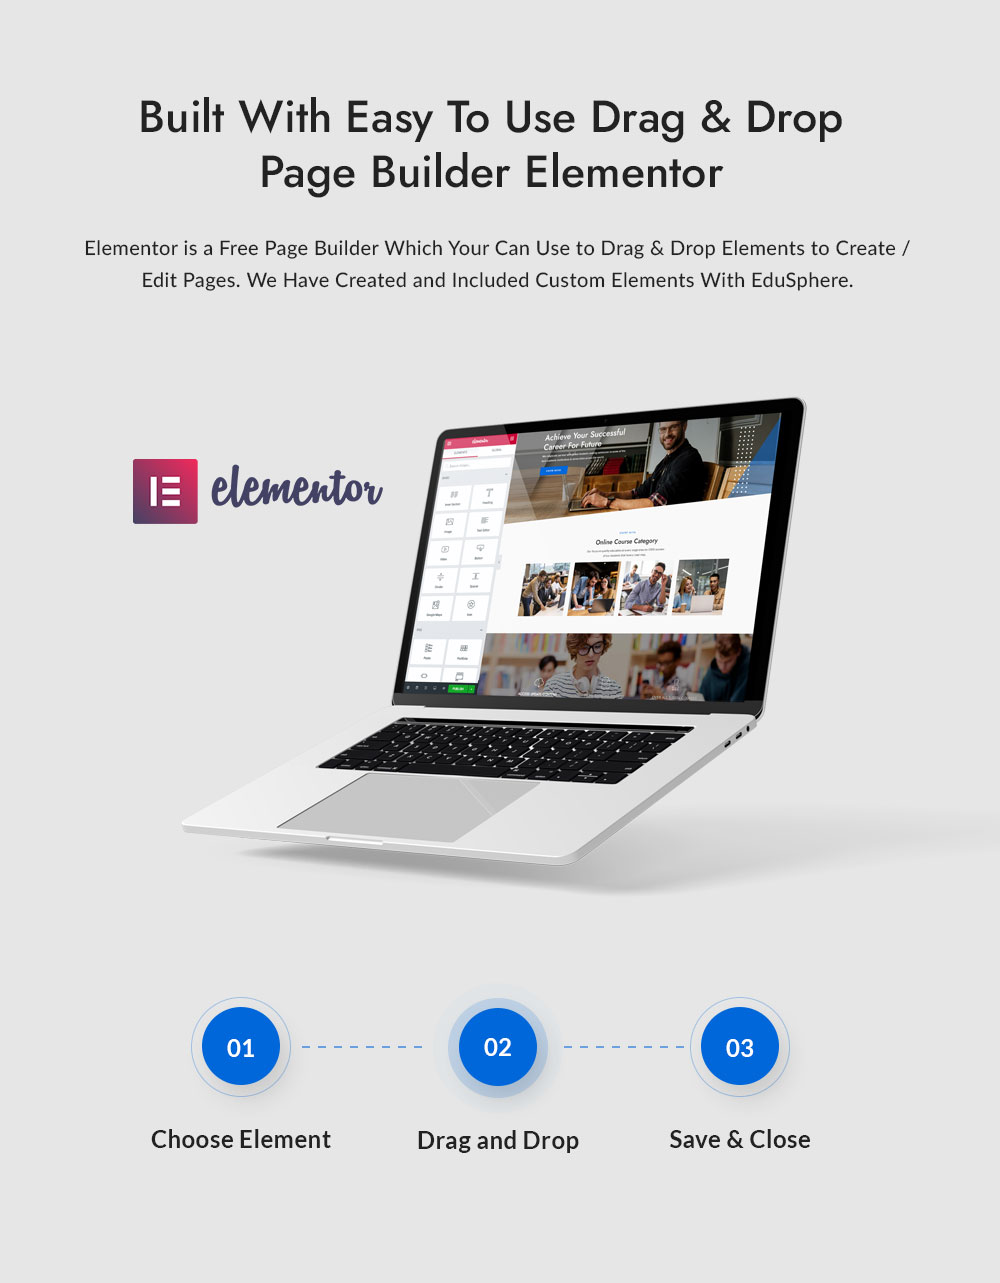 Drag and Drop Page Builder Elementor